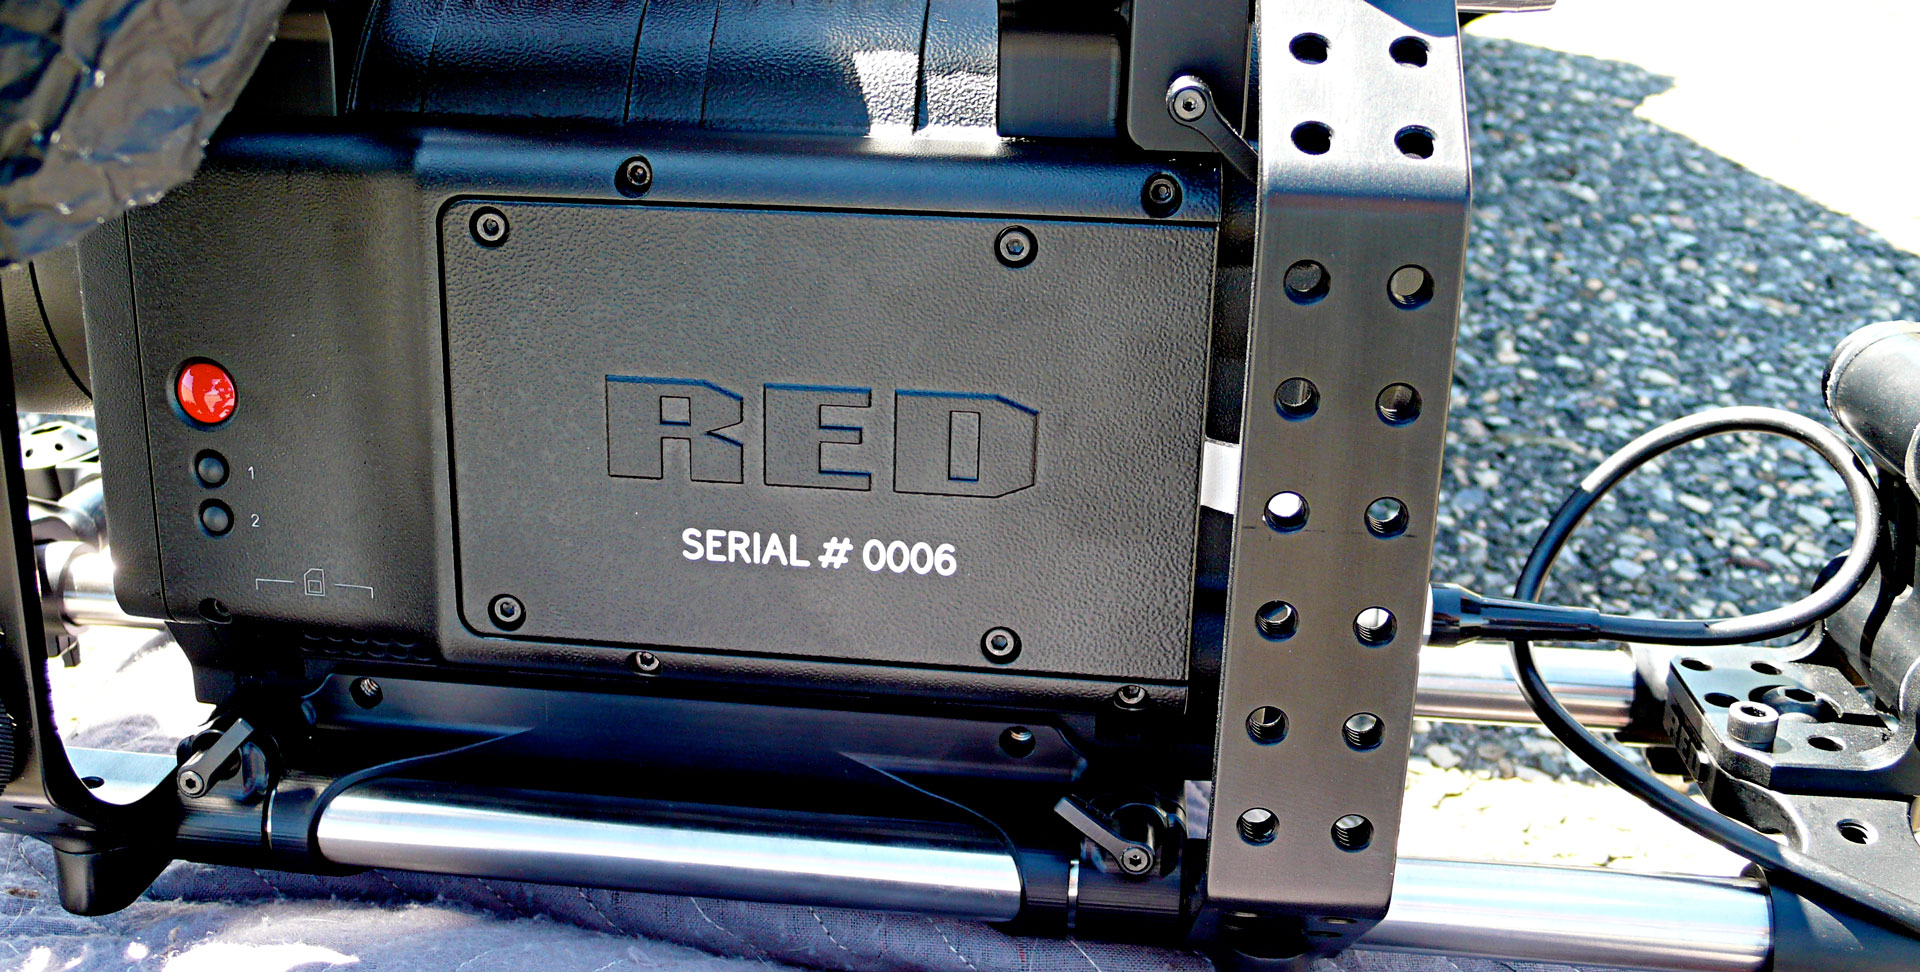 The RED One Serial #0006